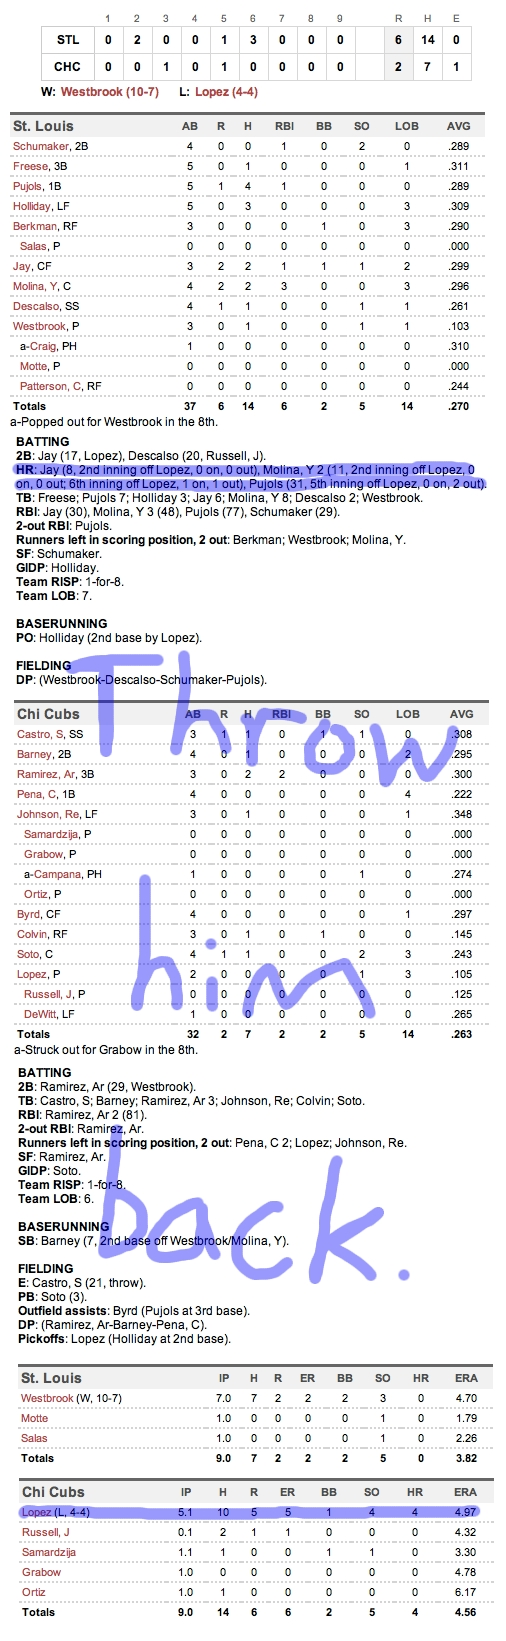 Enhanced Box Score: Cardinals 6, Cubs 2 – August 21, 2011